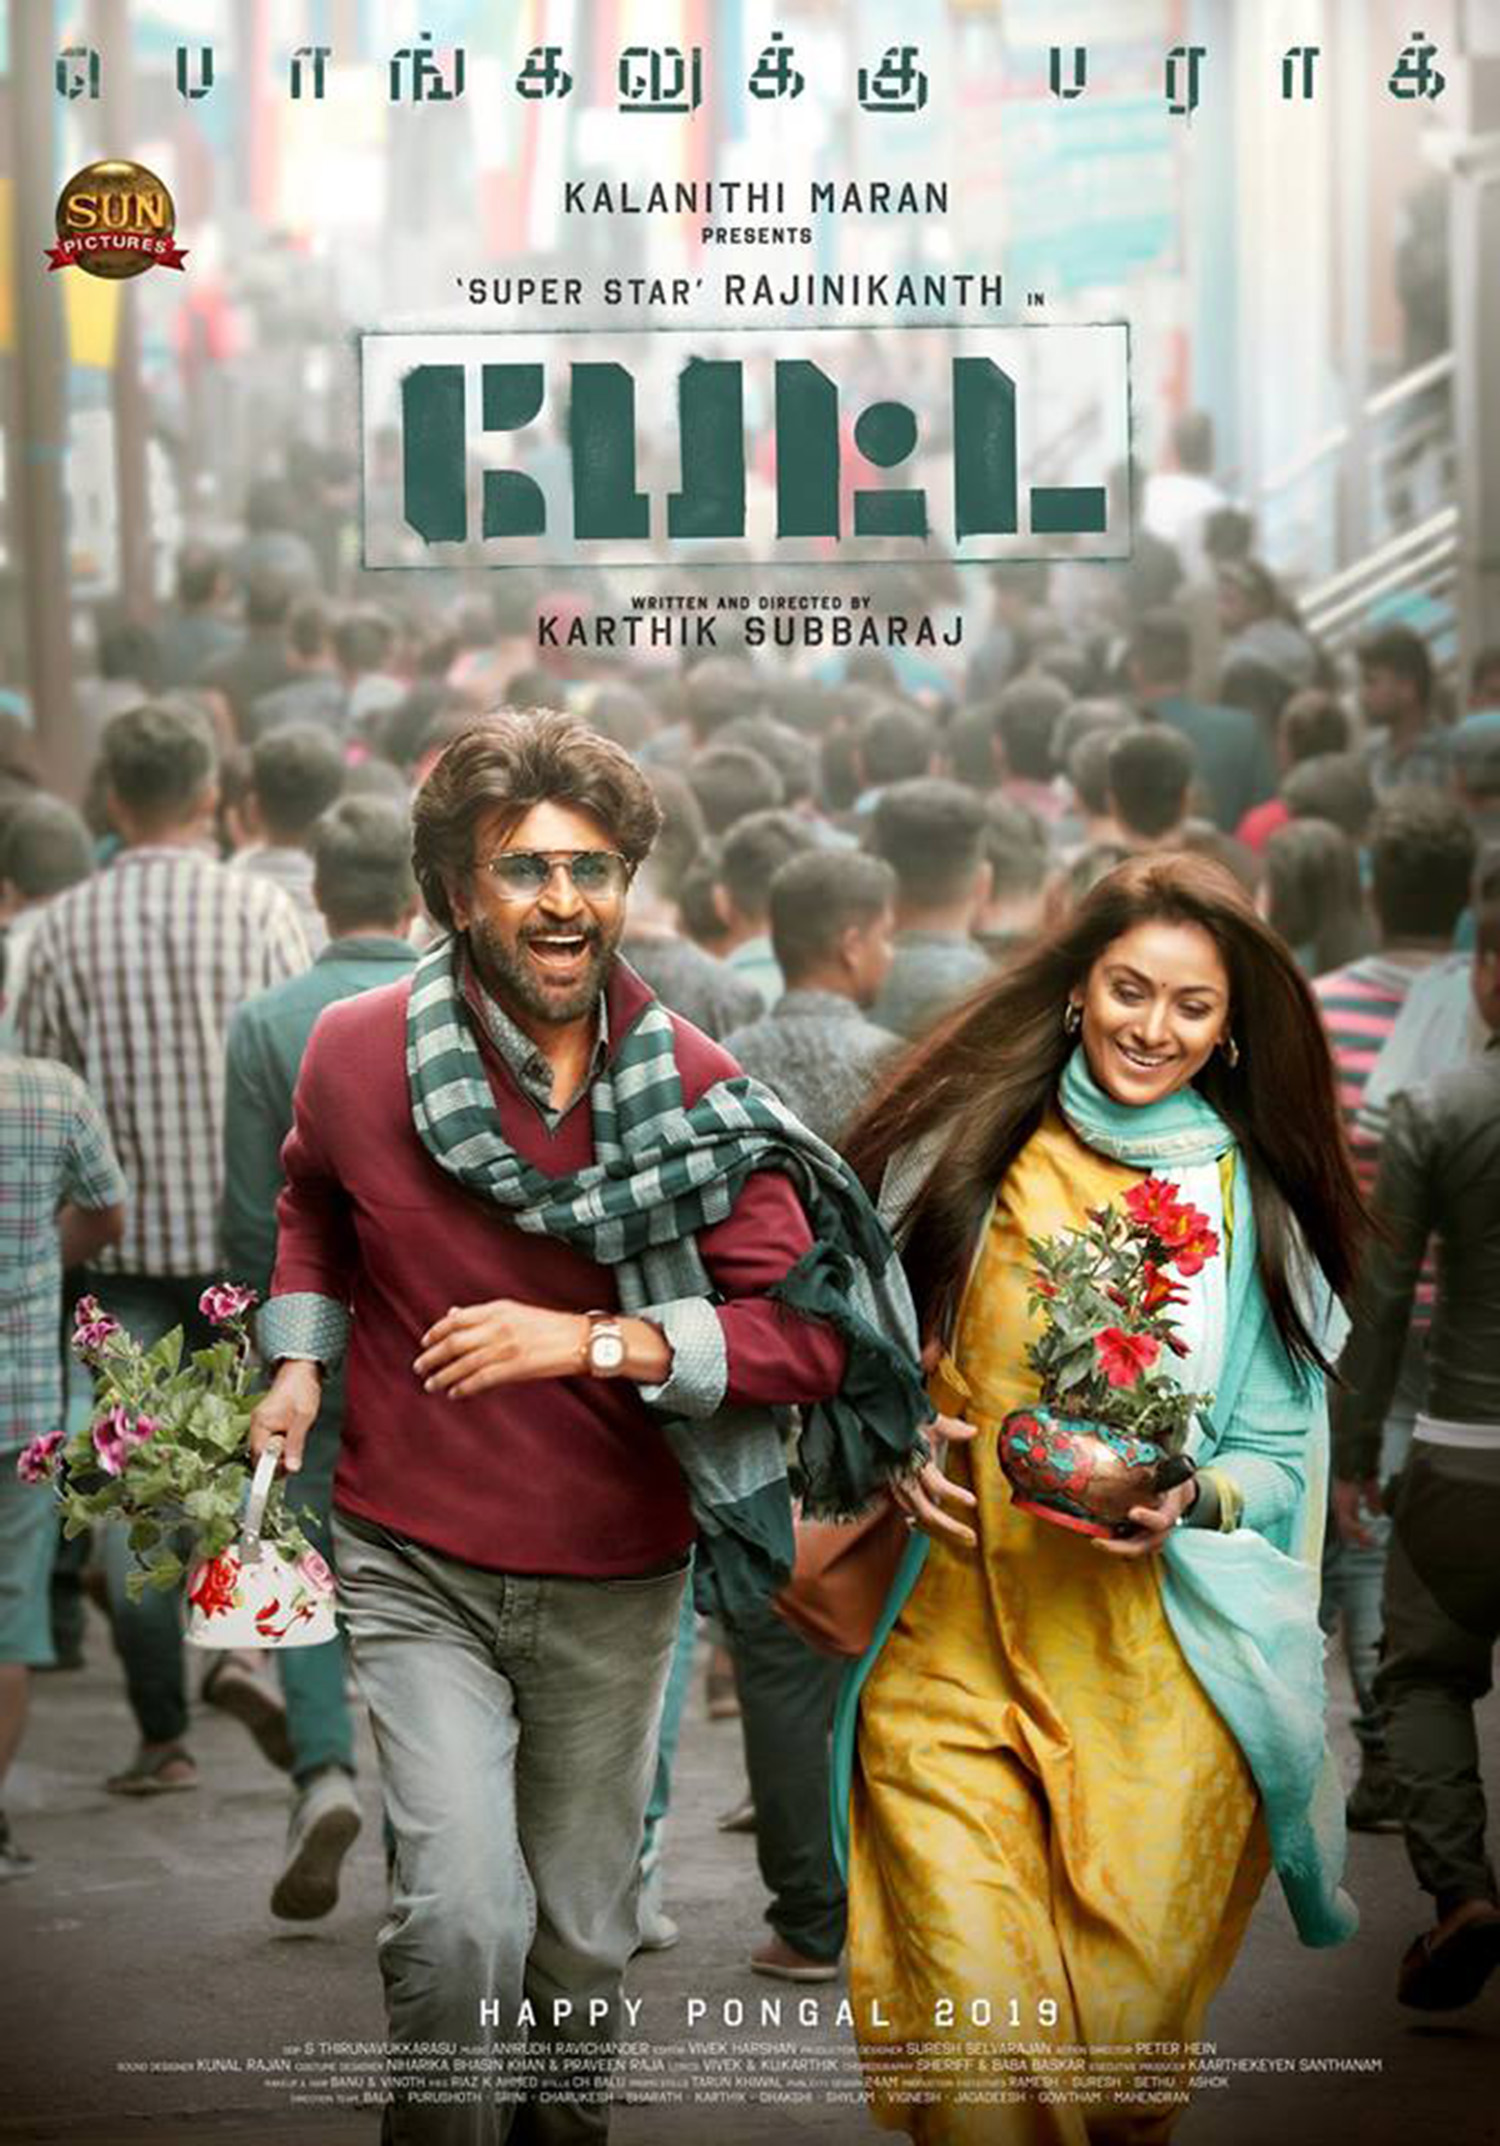 Petta,Petta movie,Petta new poster,Petta movie new poster,Petta tamil movie poster,rajinikanth and simran in petta,superstar rajinikanth,rajinikanth,simran,karthik subbaraj,simran in petta,petta release date,rajinikanth's petta release date,petta tamil movie release date